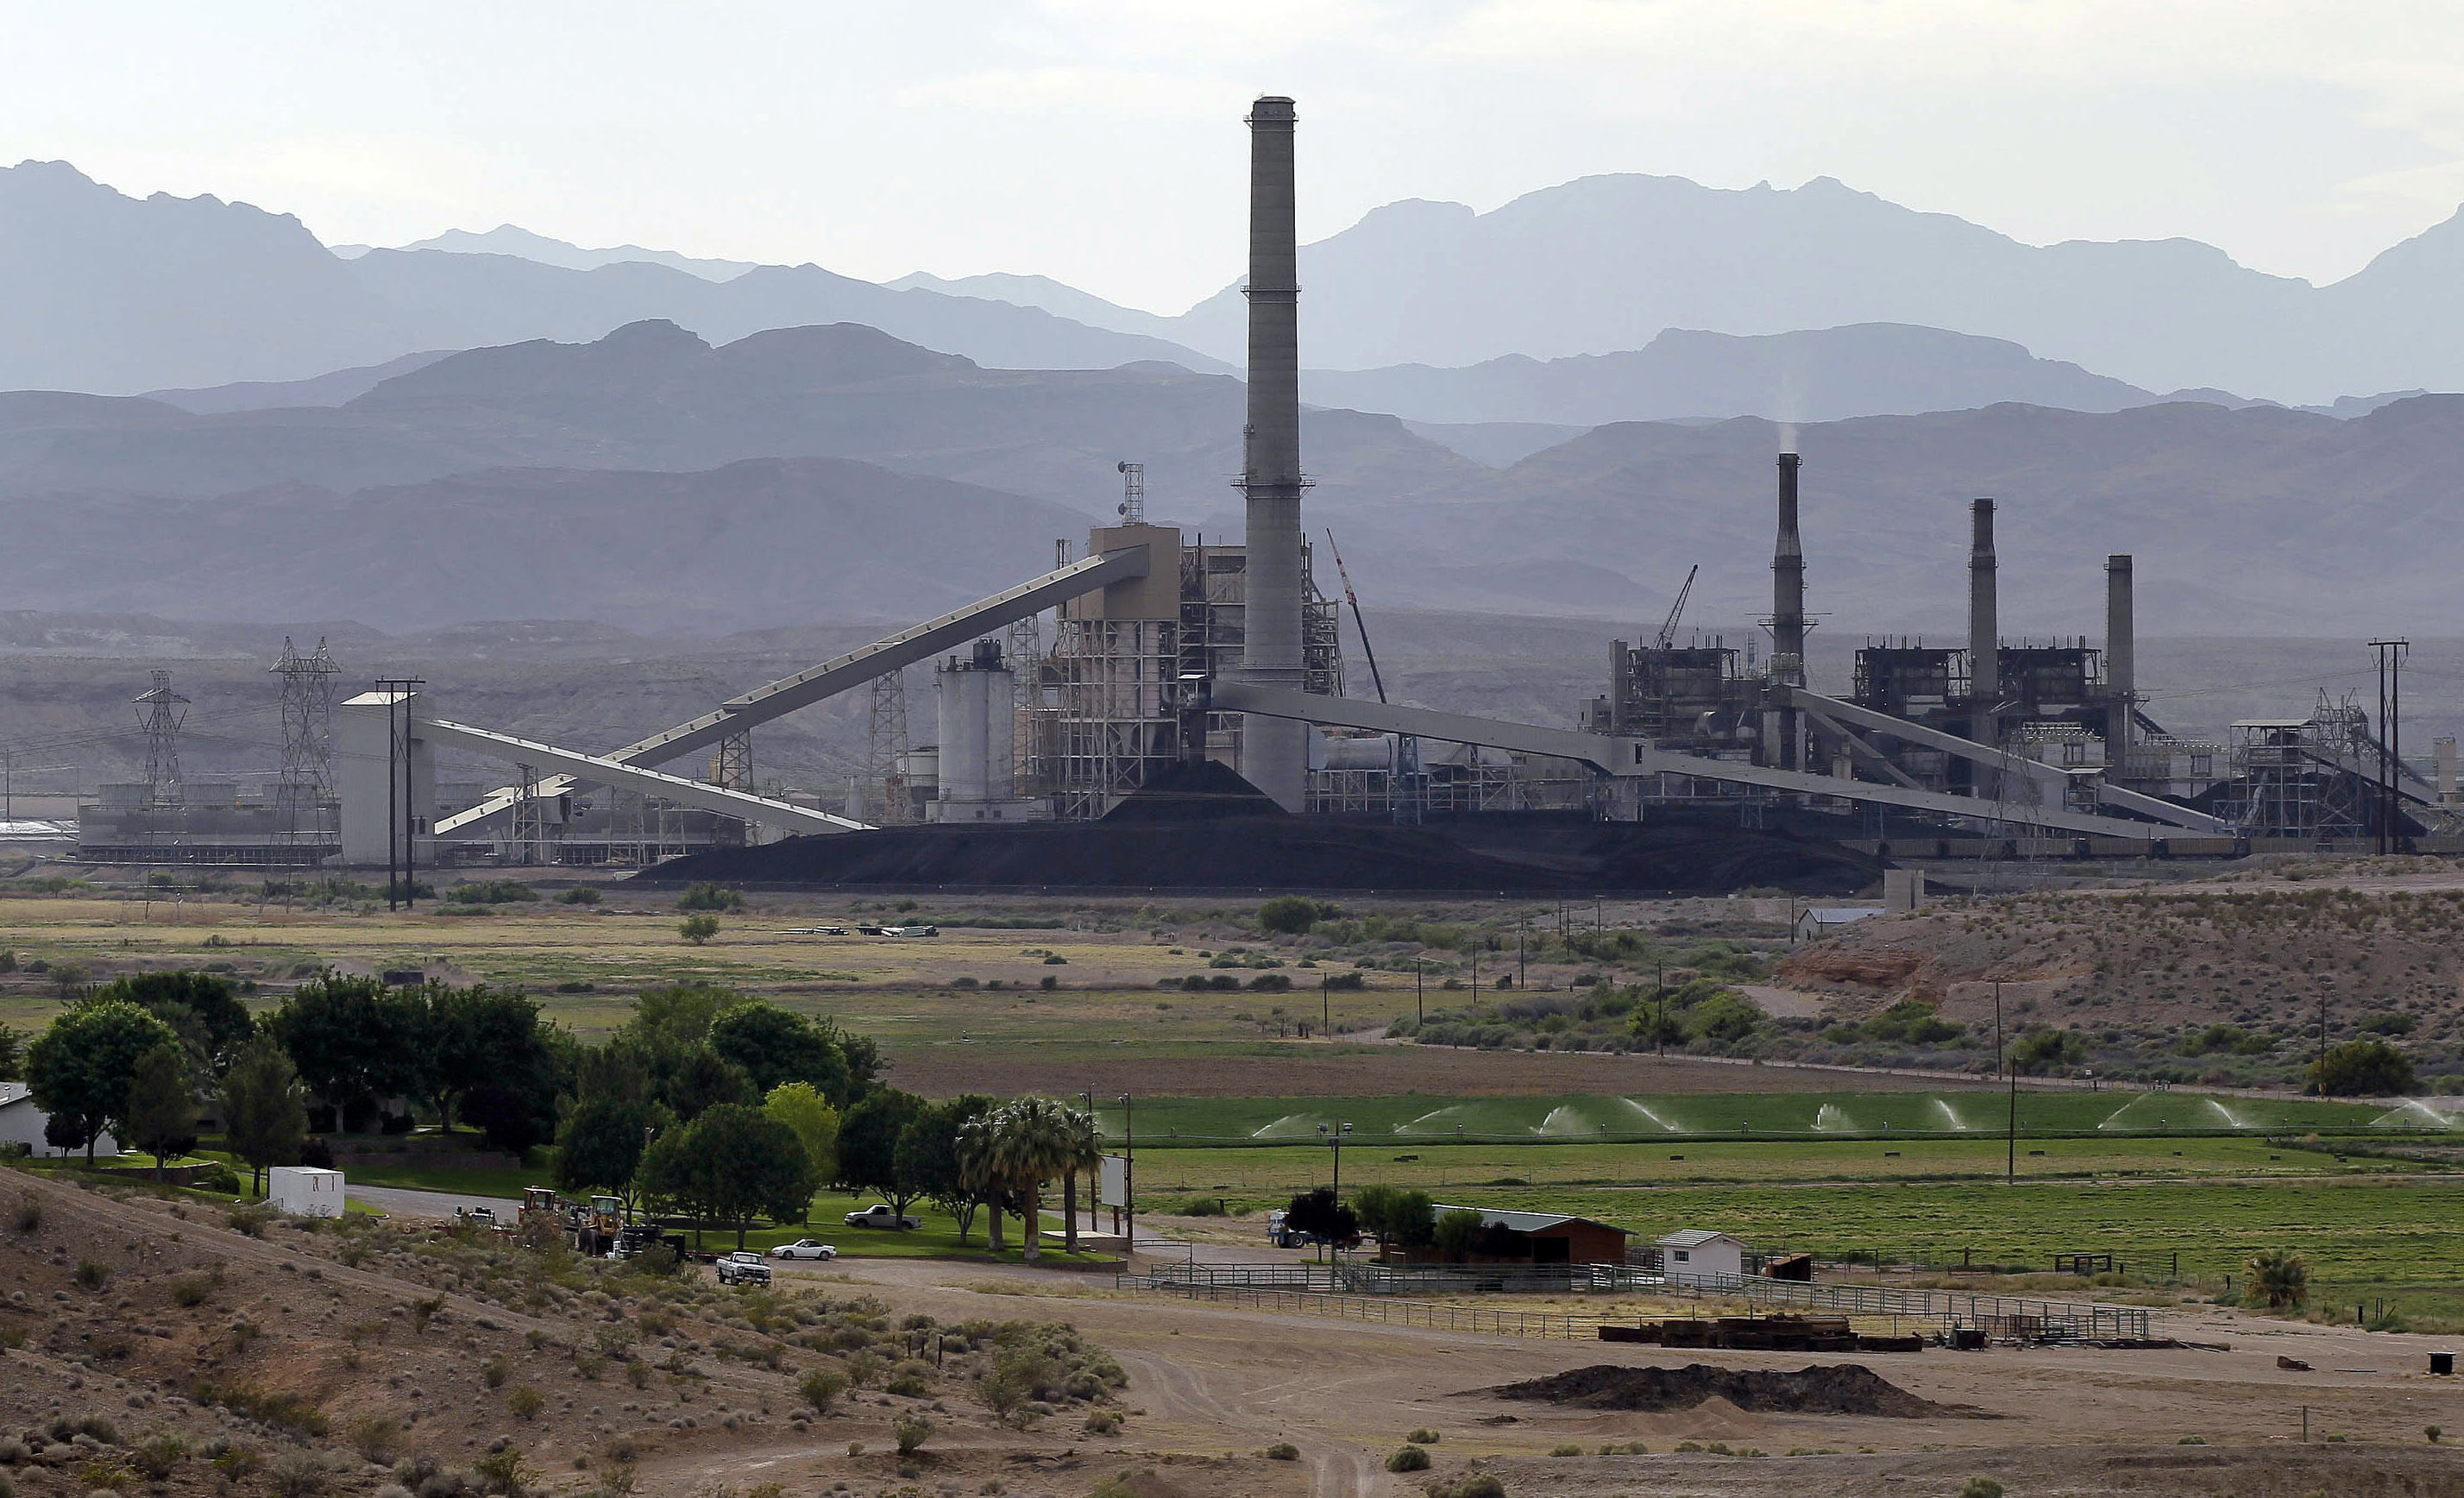 The west's largest coal plant - and seventh biggest source